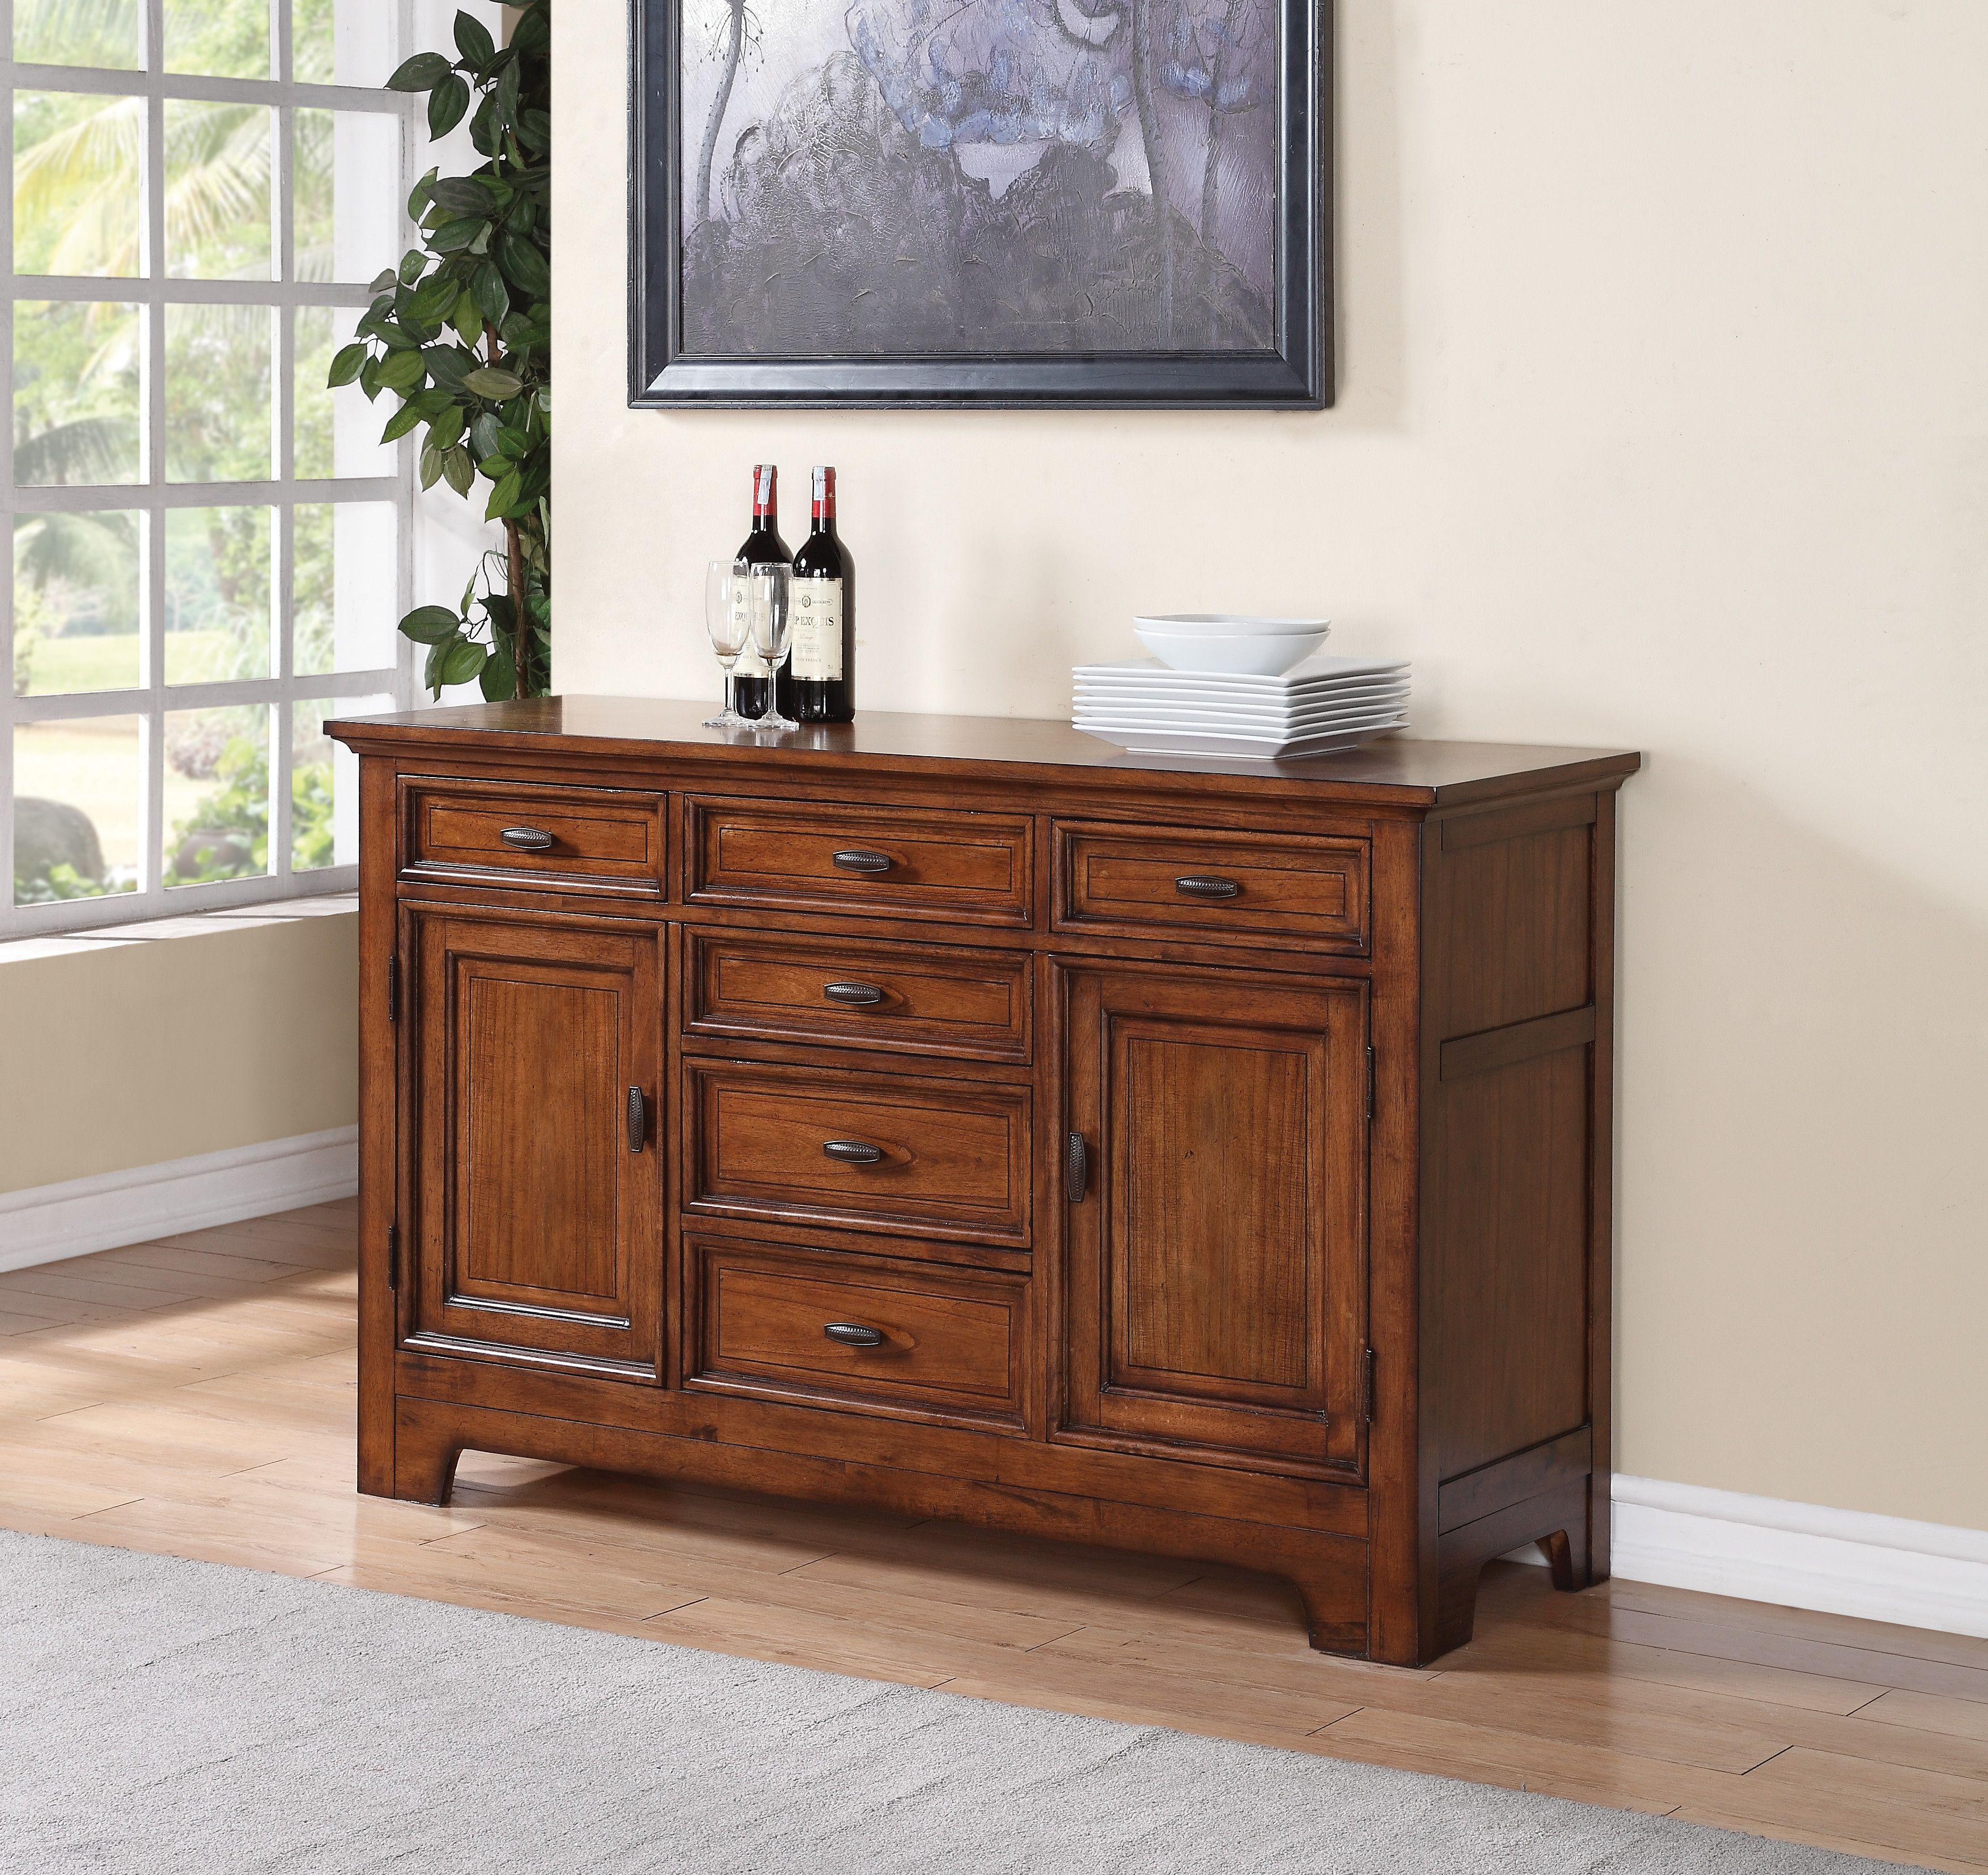 Flexsteel Wynwood River Valley Buffet Sideboard 709 Prices Subject To Change W1572 Dining Room